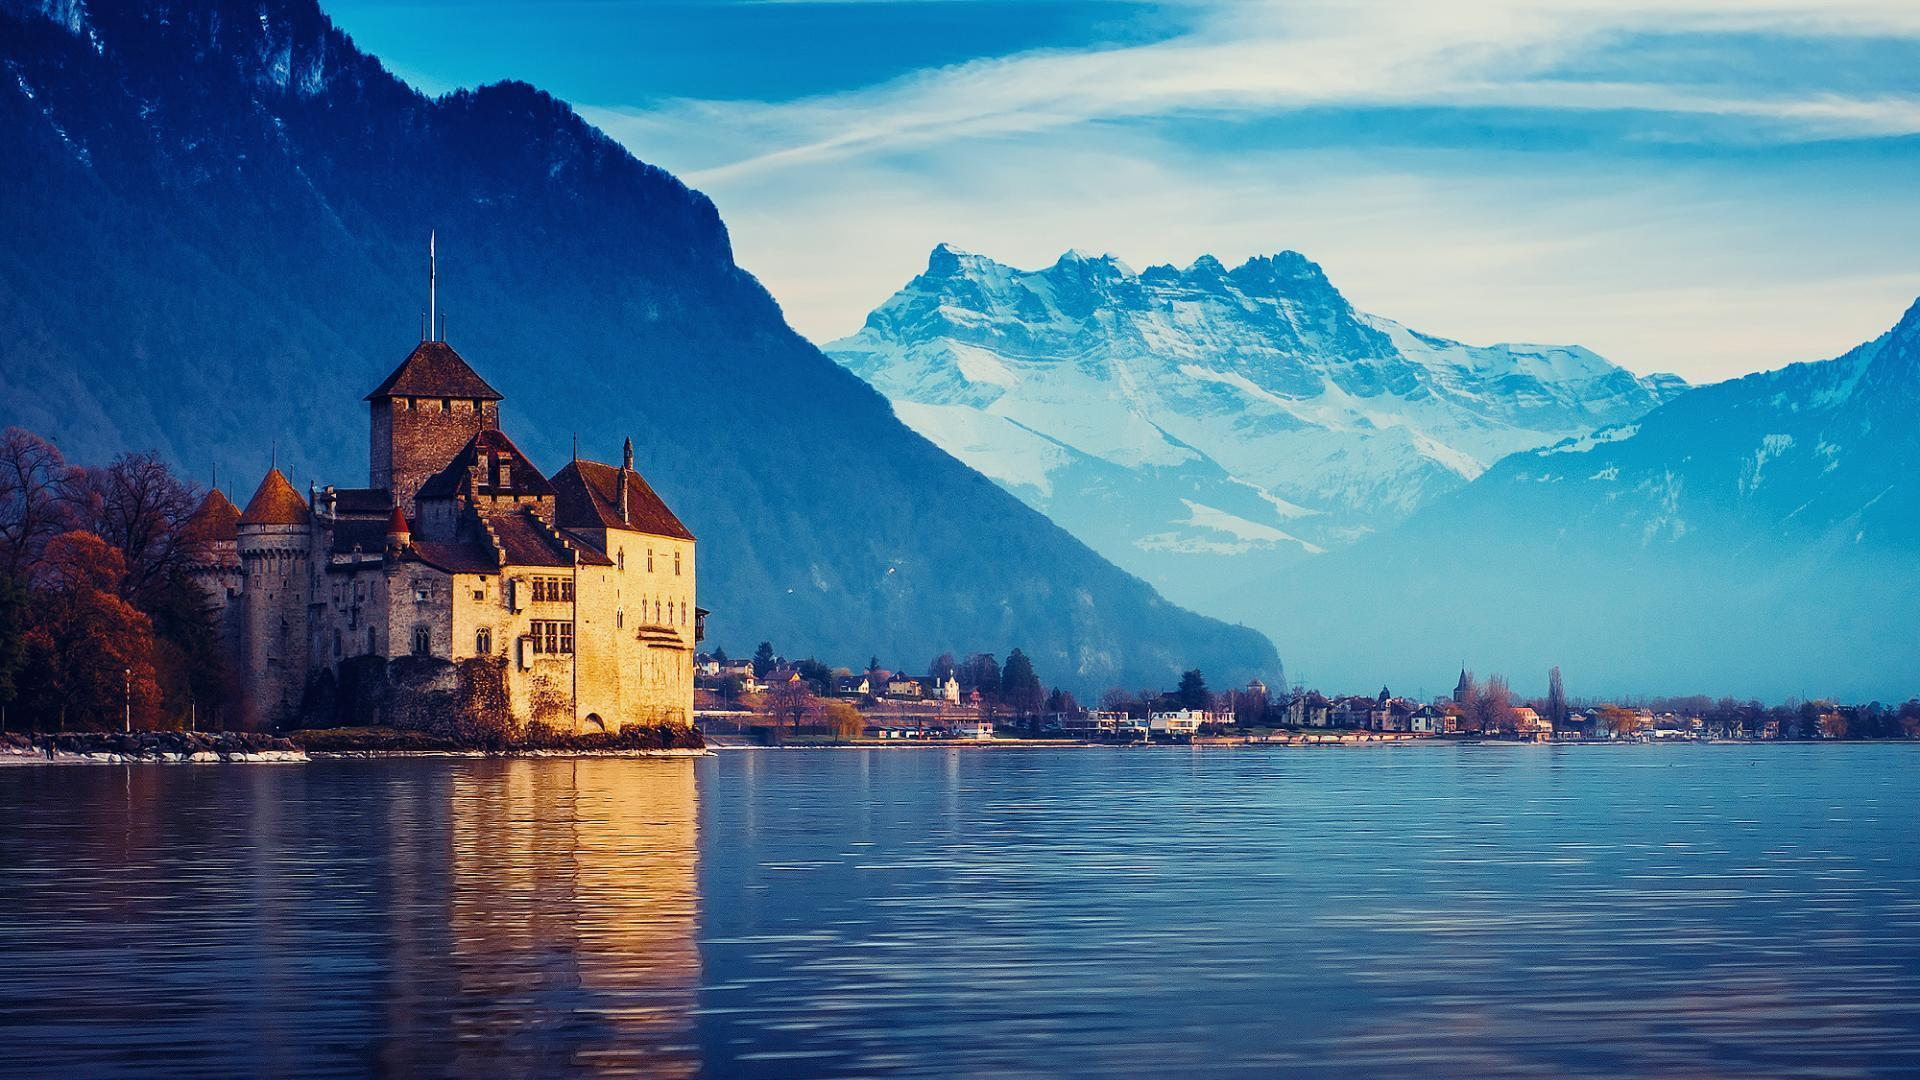 Lake Geneva,Switzerland Landscape Wallpaper 1920x1080 1080p hd .